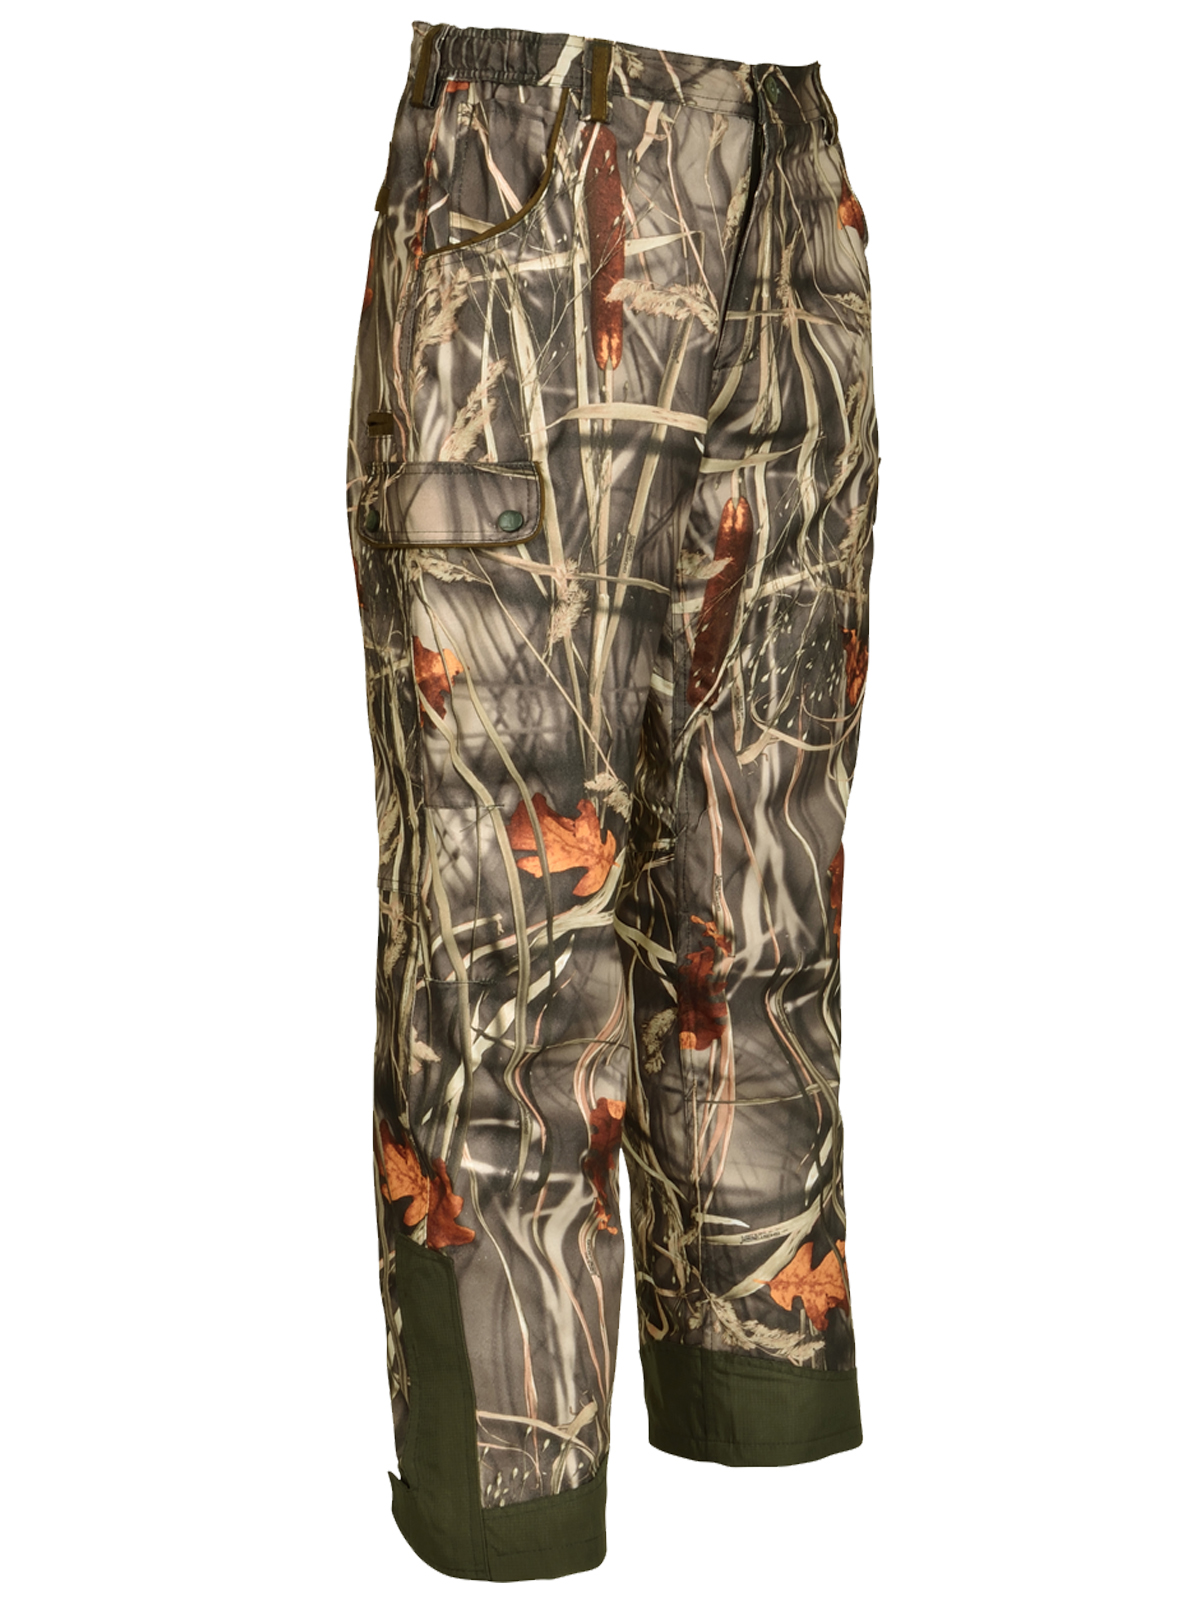 Percussion Brocard Hunting Trousers Ghost Camo